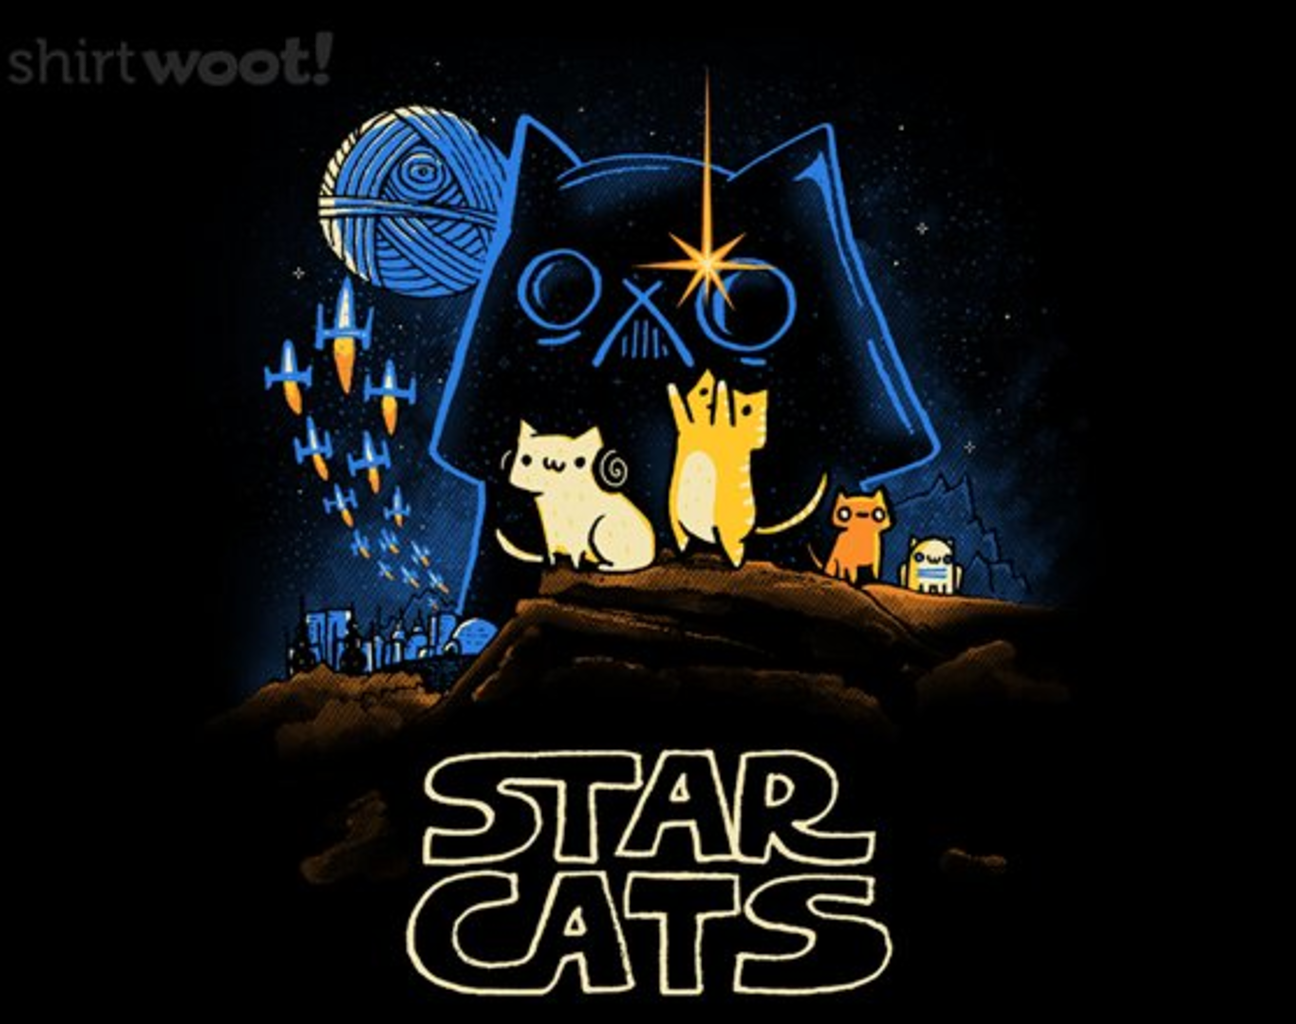 Woot!: Star Cats - $15.00 + Free shipping